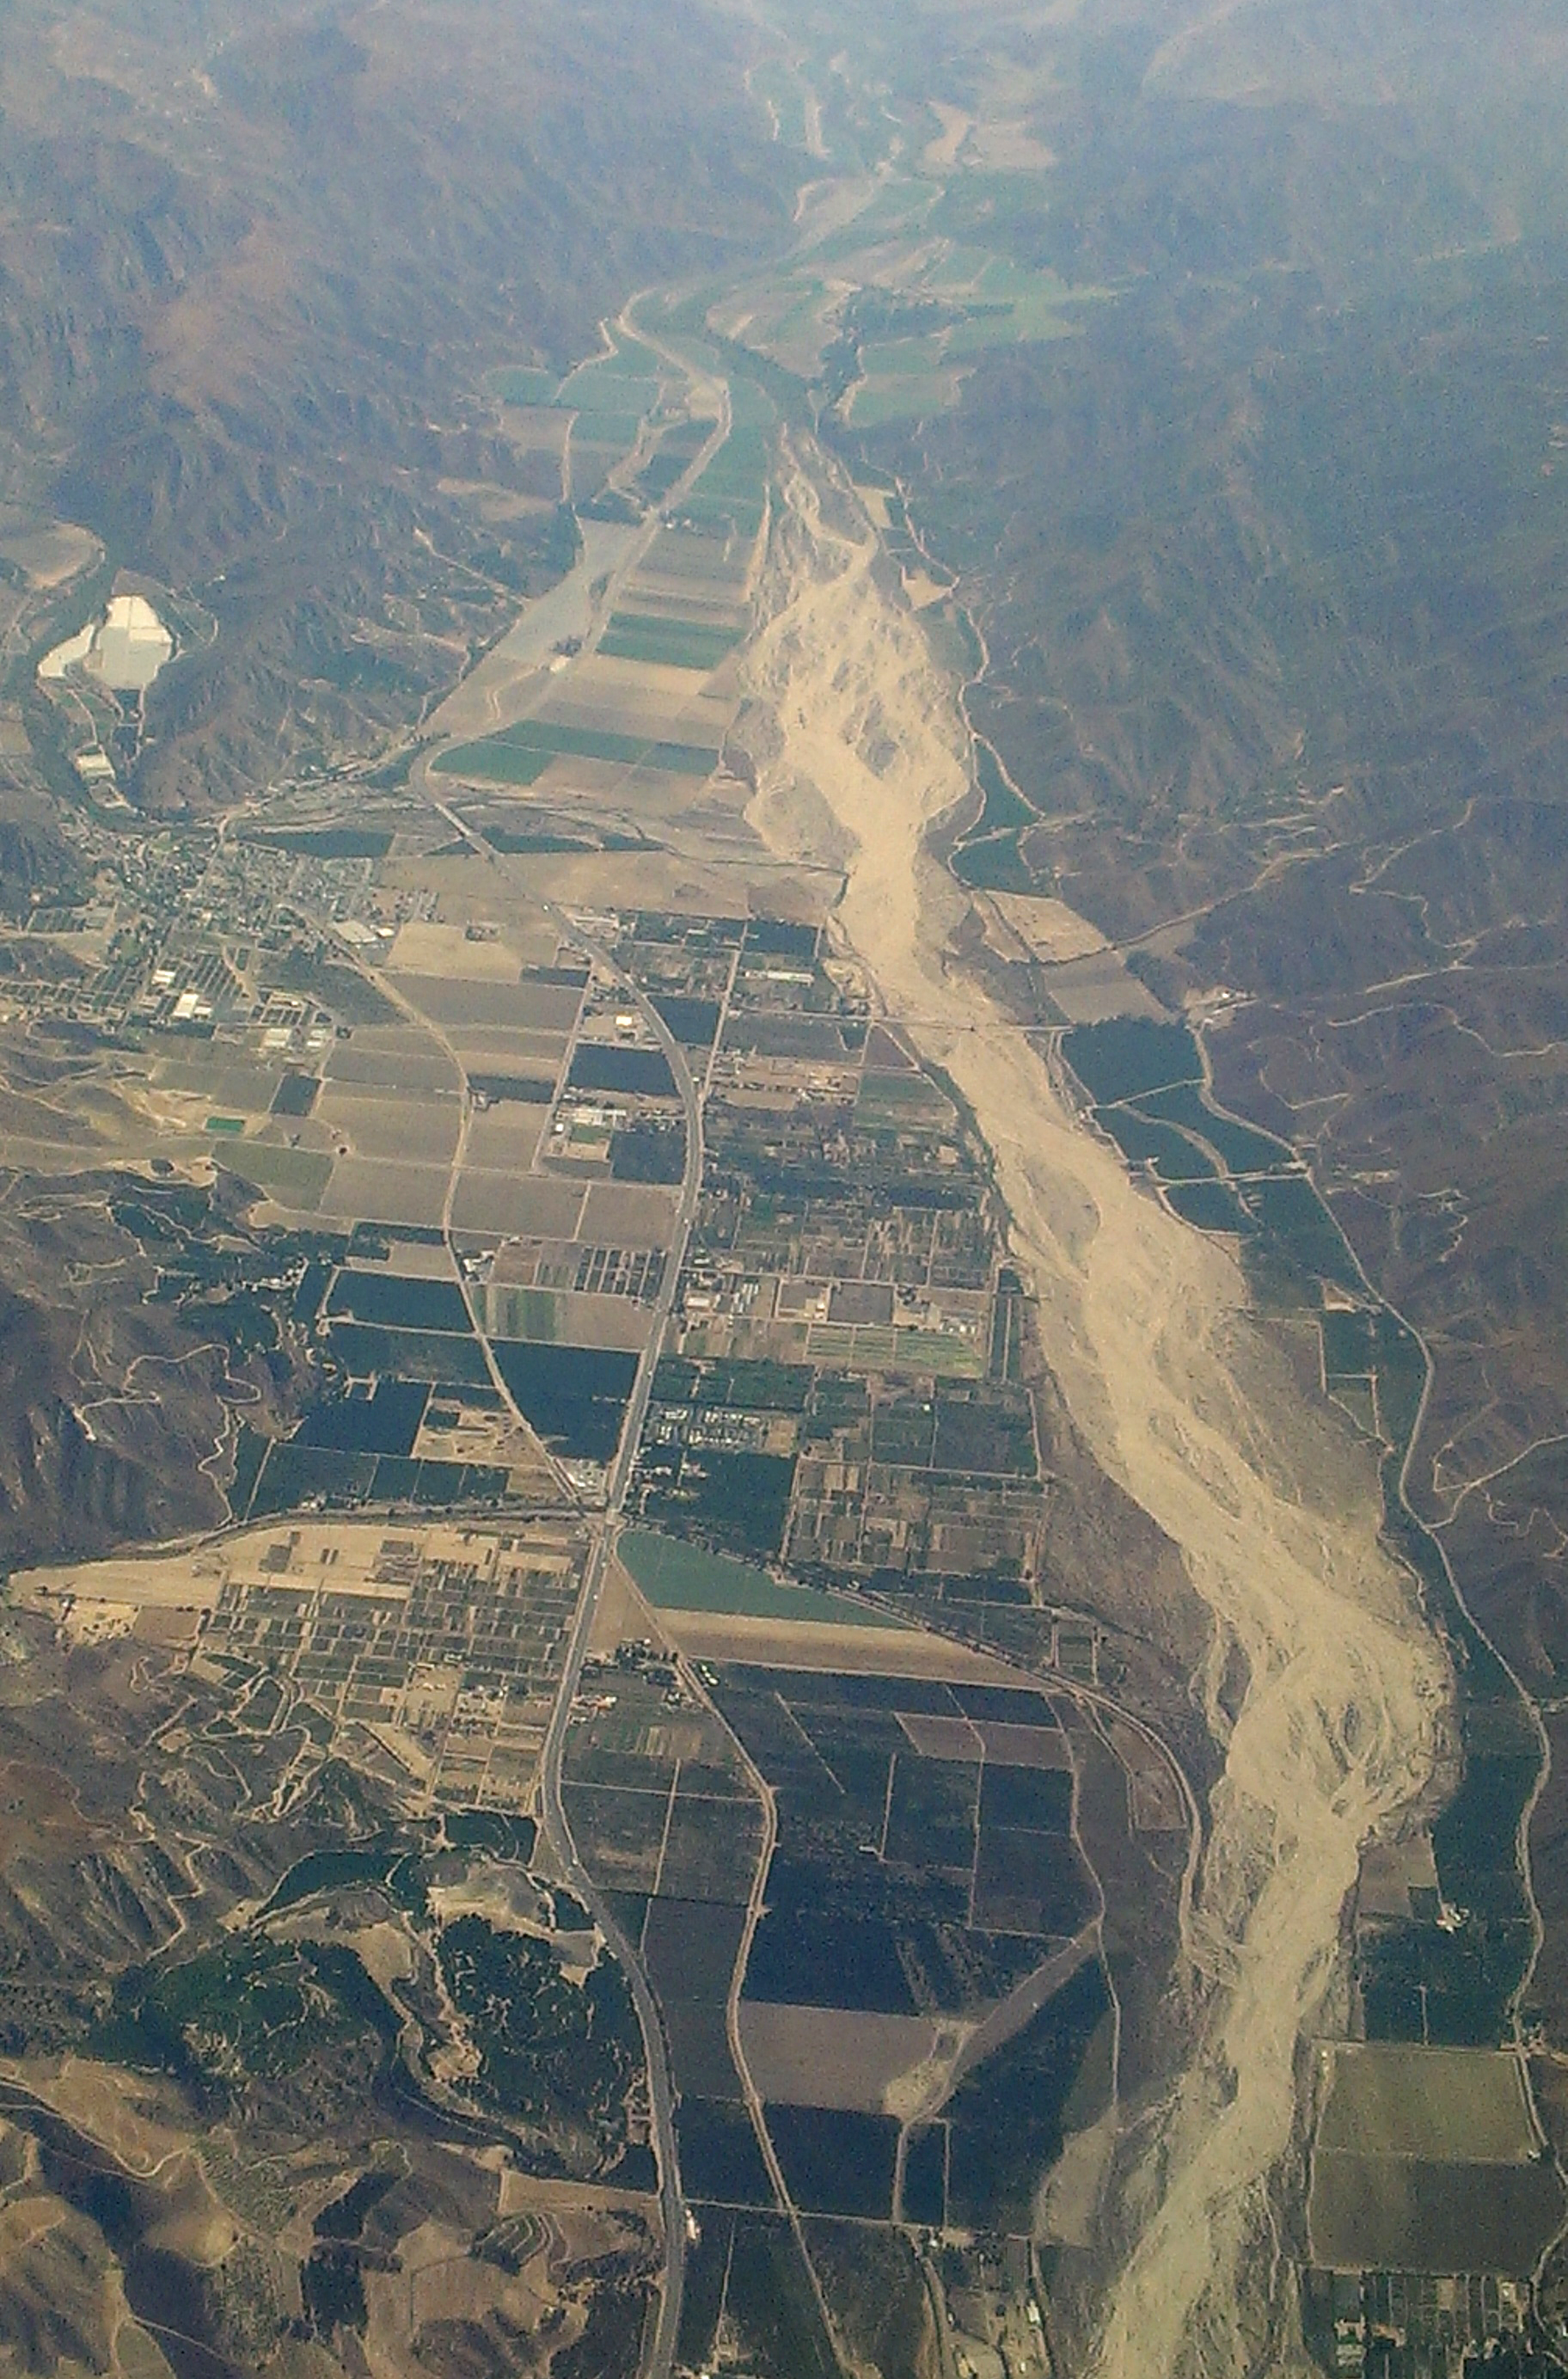 File:Santa-Clara-River-Valley-with-Piru-Aerial-from-west-August-2014